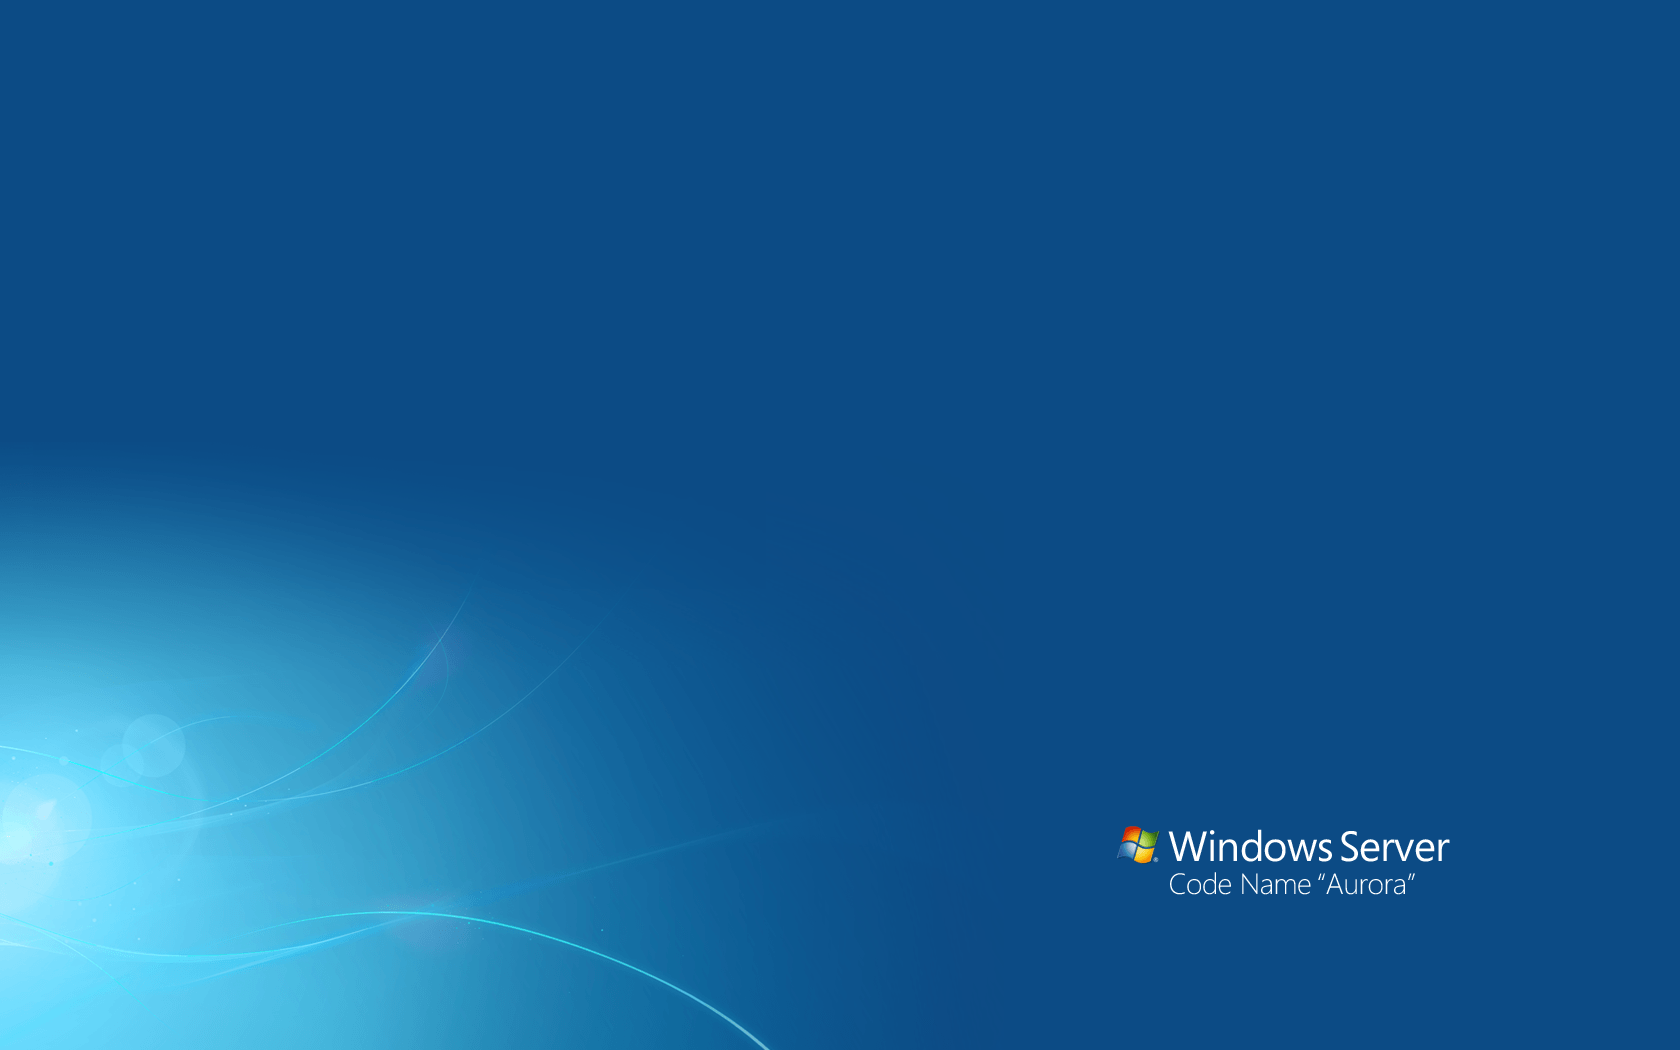 Windows 2016 server wallpapers wallpaper cave for Wallpaper 2016 home